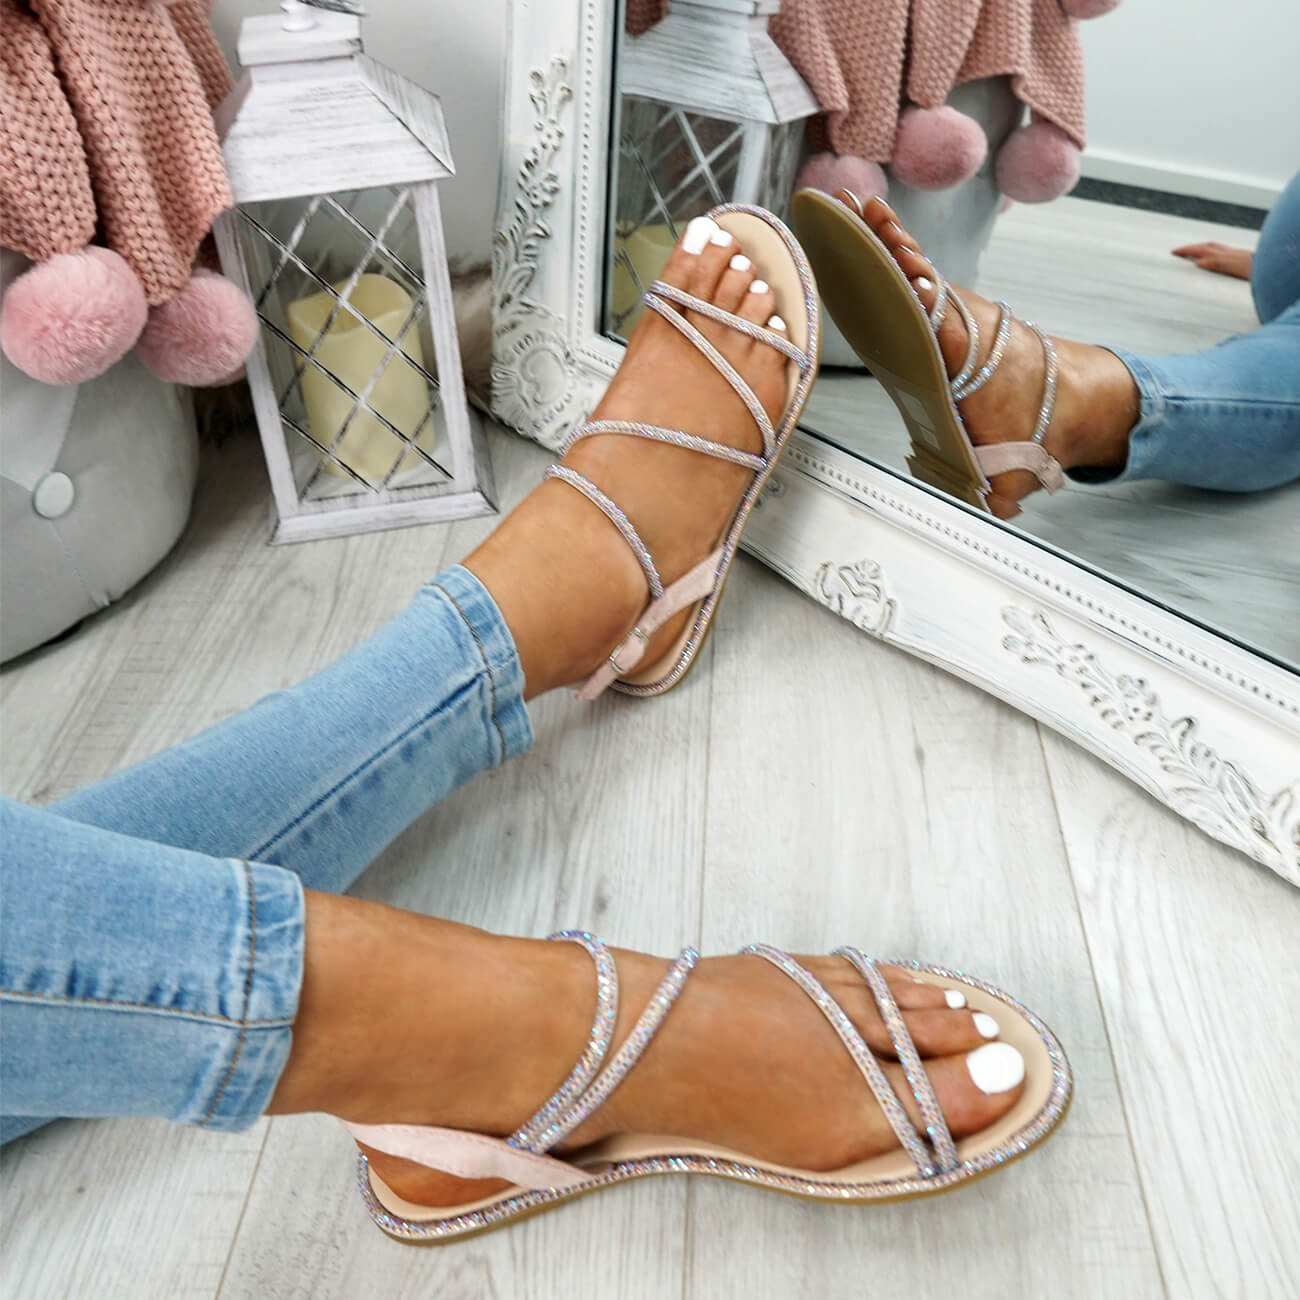 WOMENS-LADIES-STUDDED-ANKLE-STRAP-FLAT-SHOES-PARTY-CLUB-SANDALS-SHOES-SIZE-UK thumbnail 16